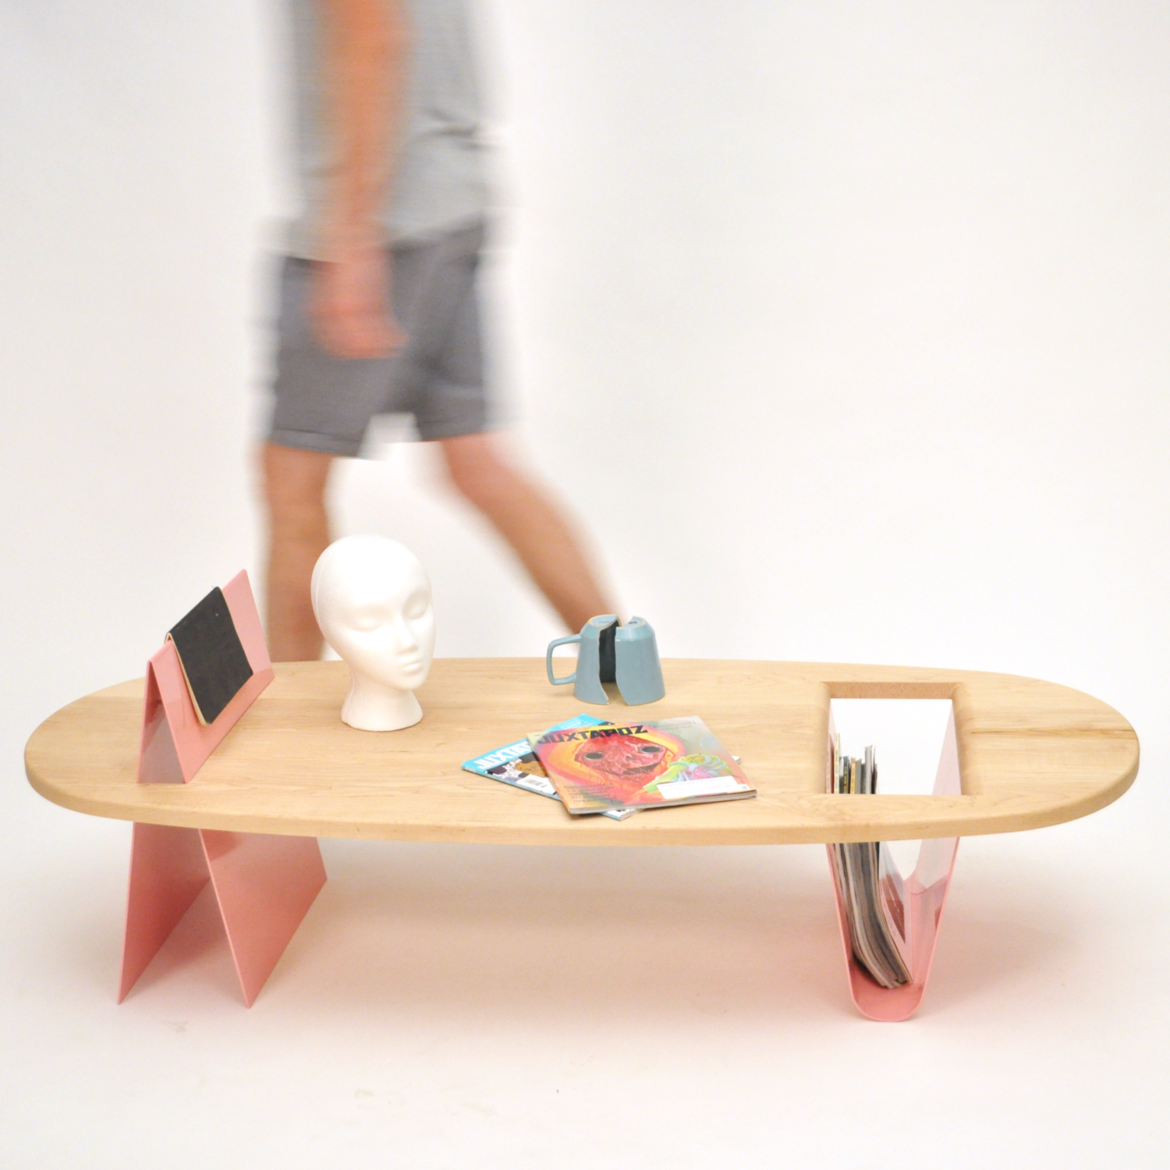 Peak and Valley coffee table by A__to__B Studio